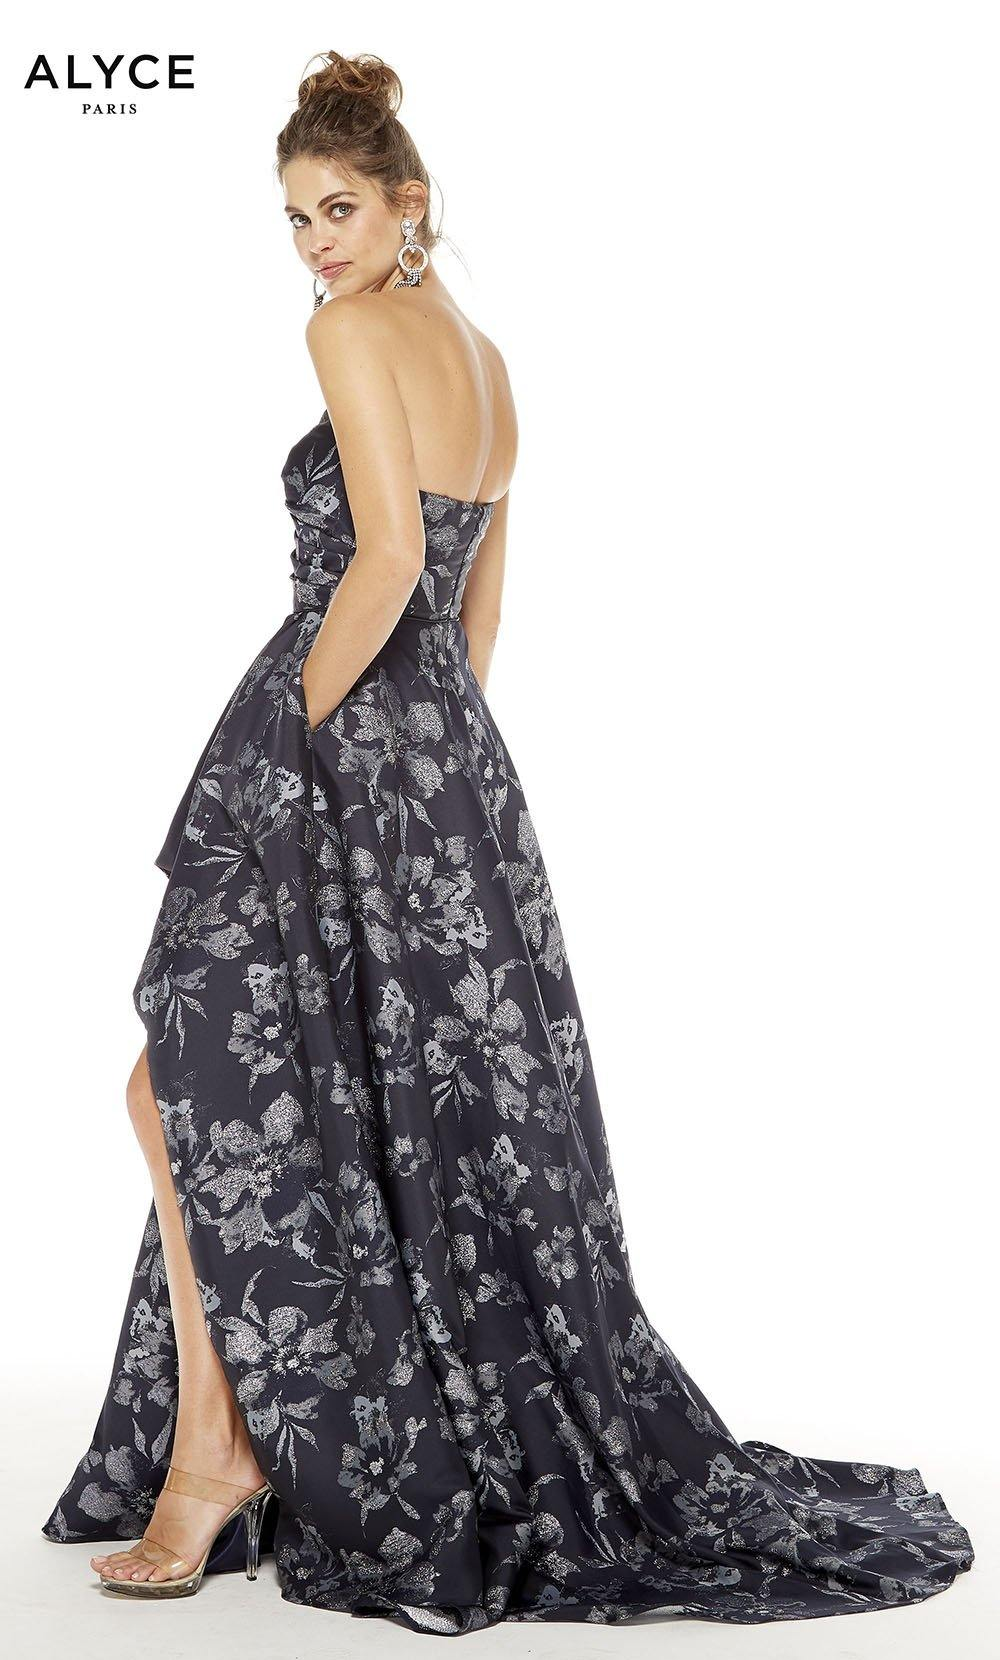 Midnight Silver strapless floral gown with a zip up back